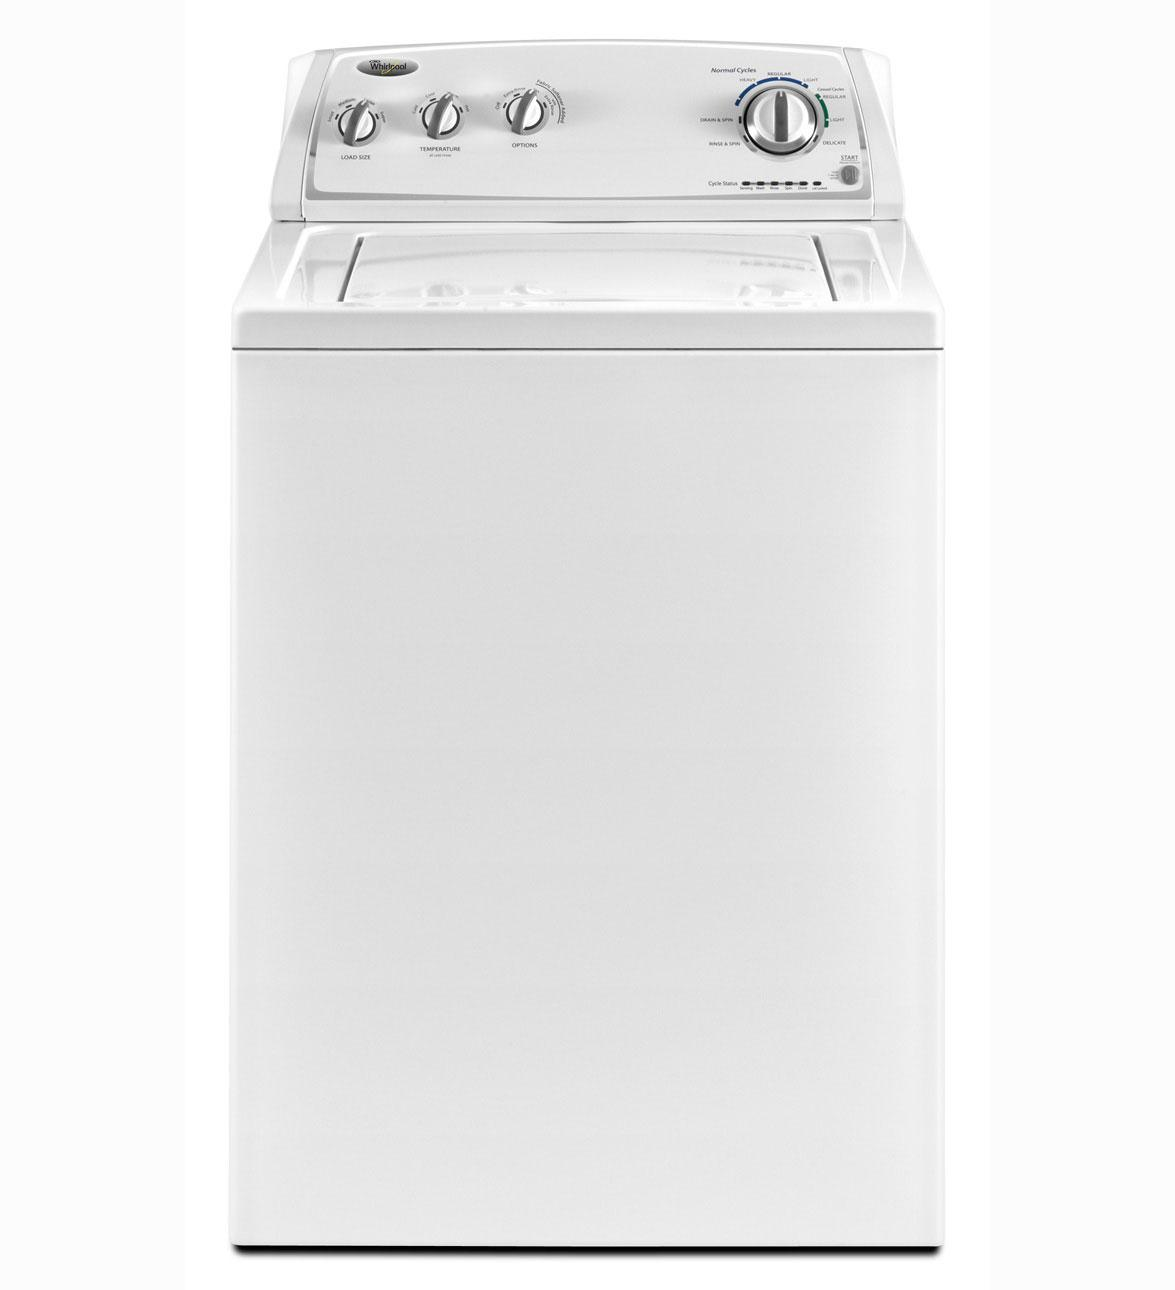 Whirlpool Wtw4800xq 27 Quot Top Load Washer With 3 4 Cu Ft